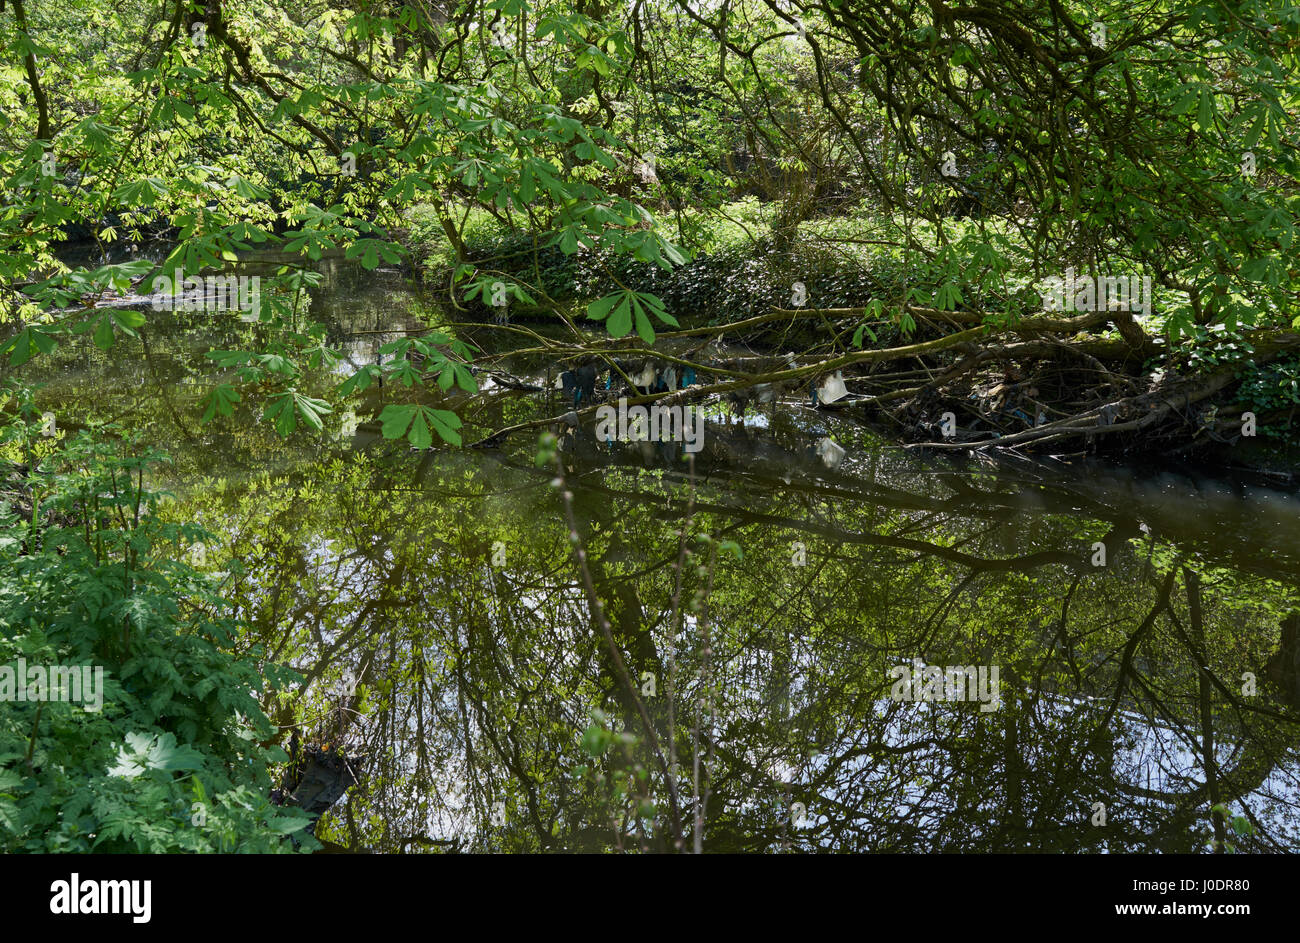 A fallen tree in the river Brent collecting rubbish - Stock Image